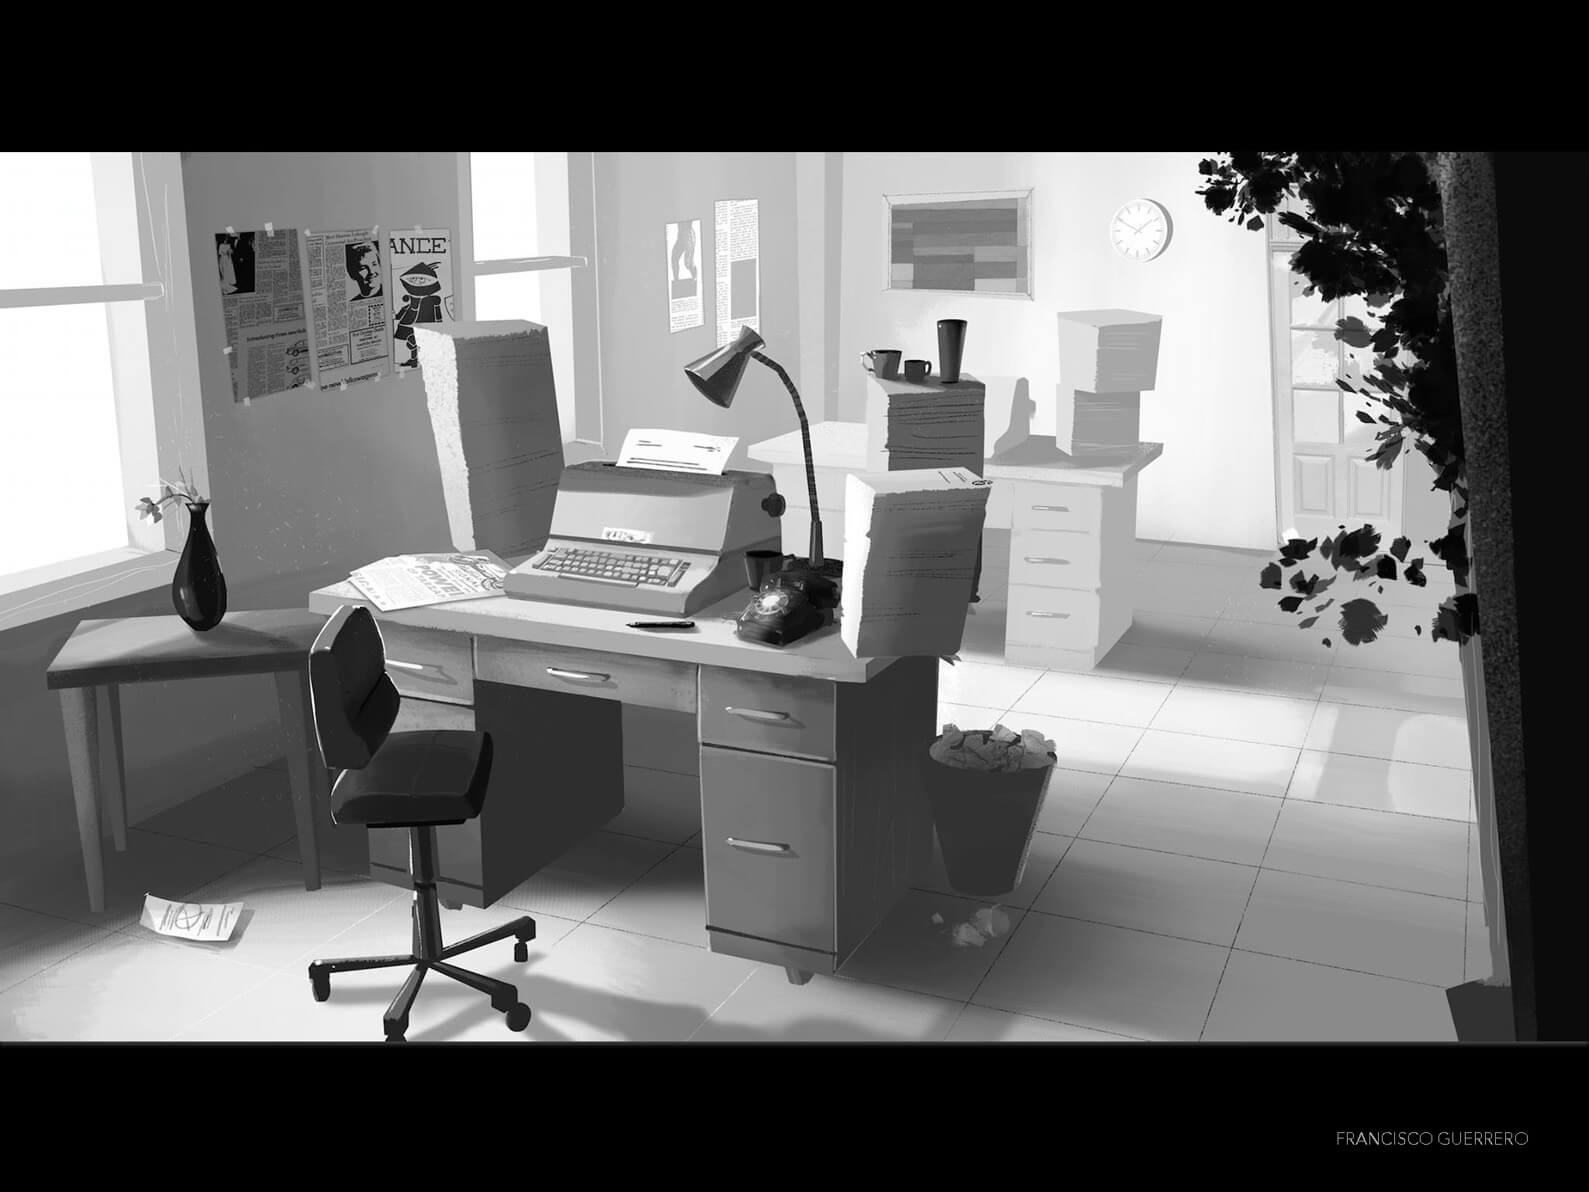 Grayscale drawing of an office setting with desks, chairs, typewriters, and paper stacks in Orientation Center for the Unseen